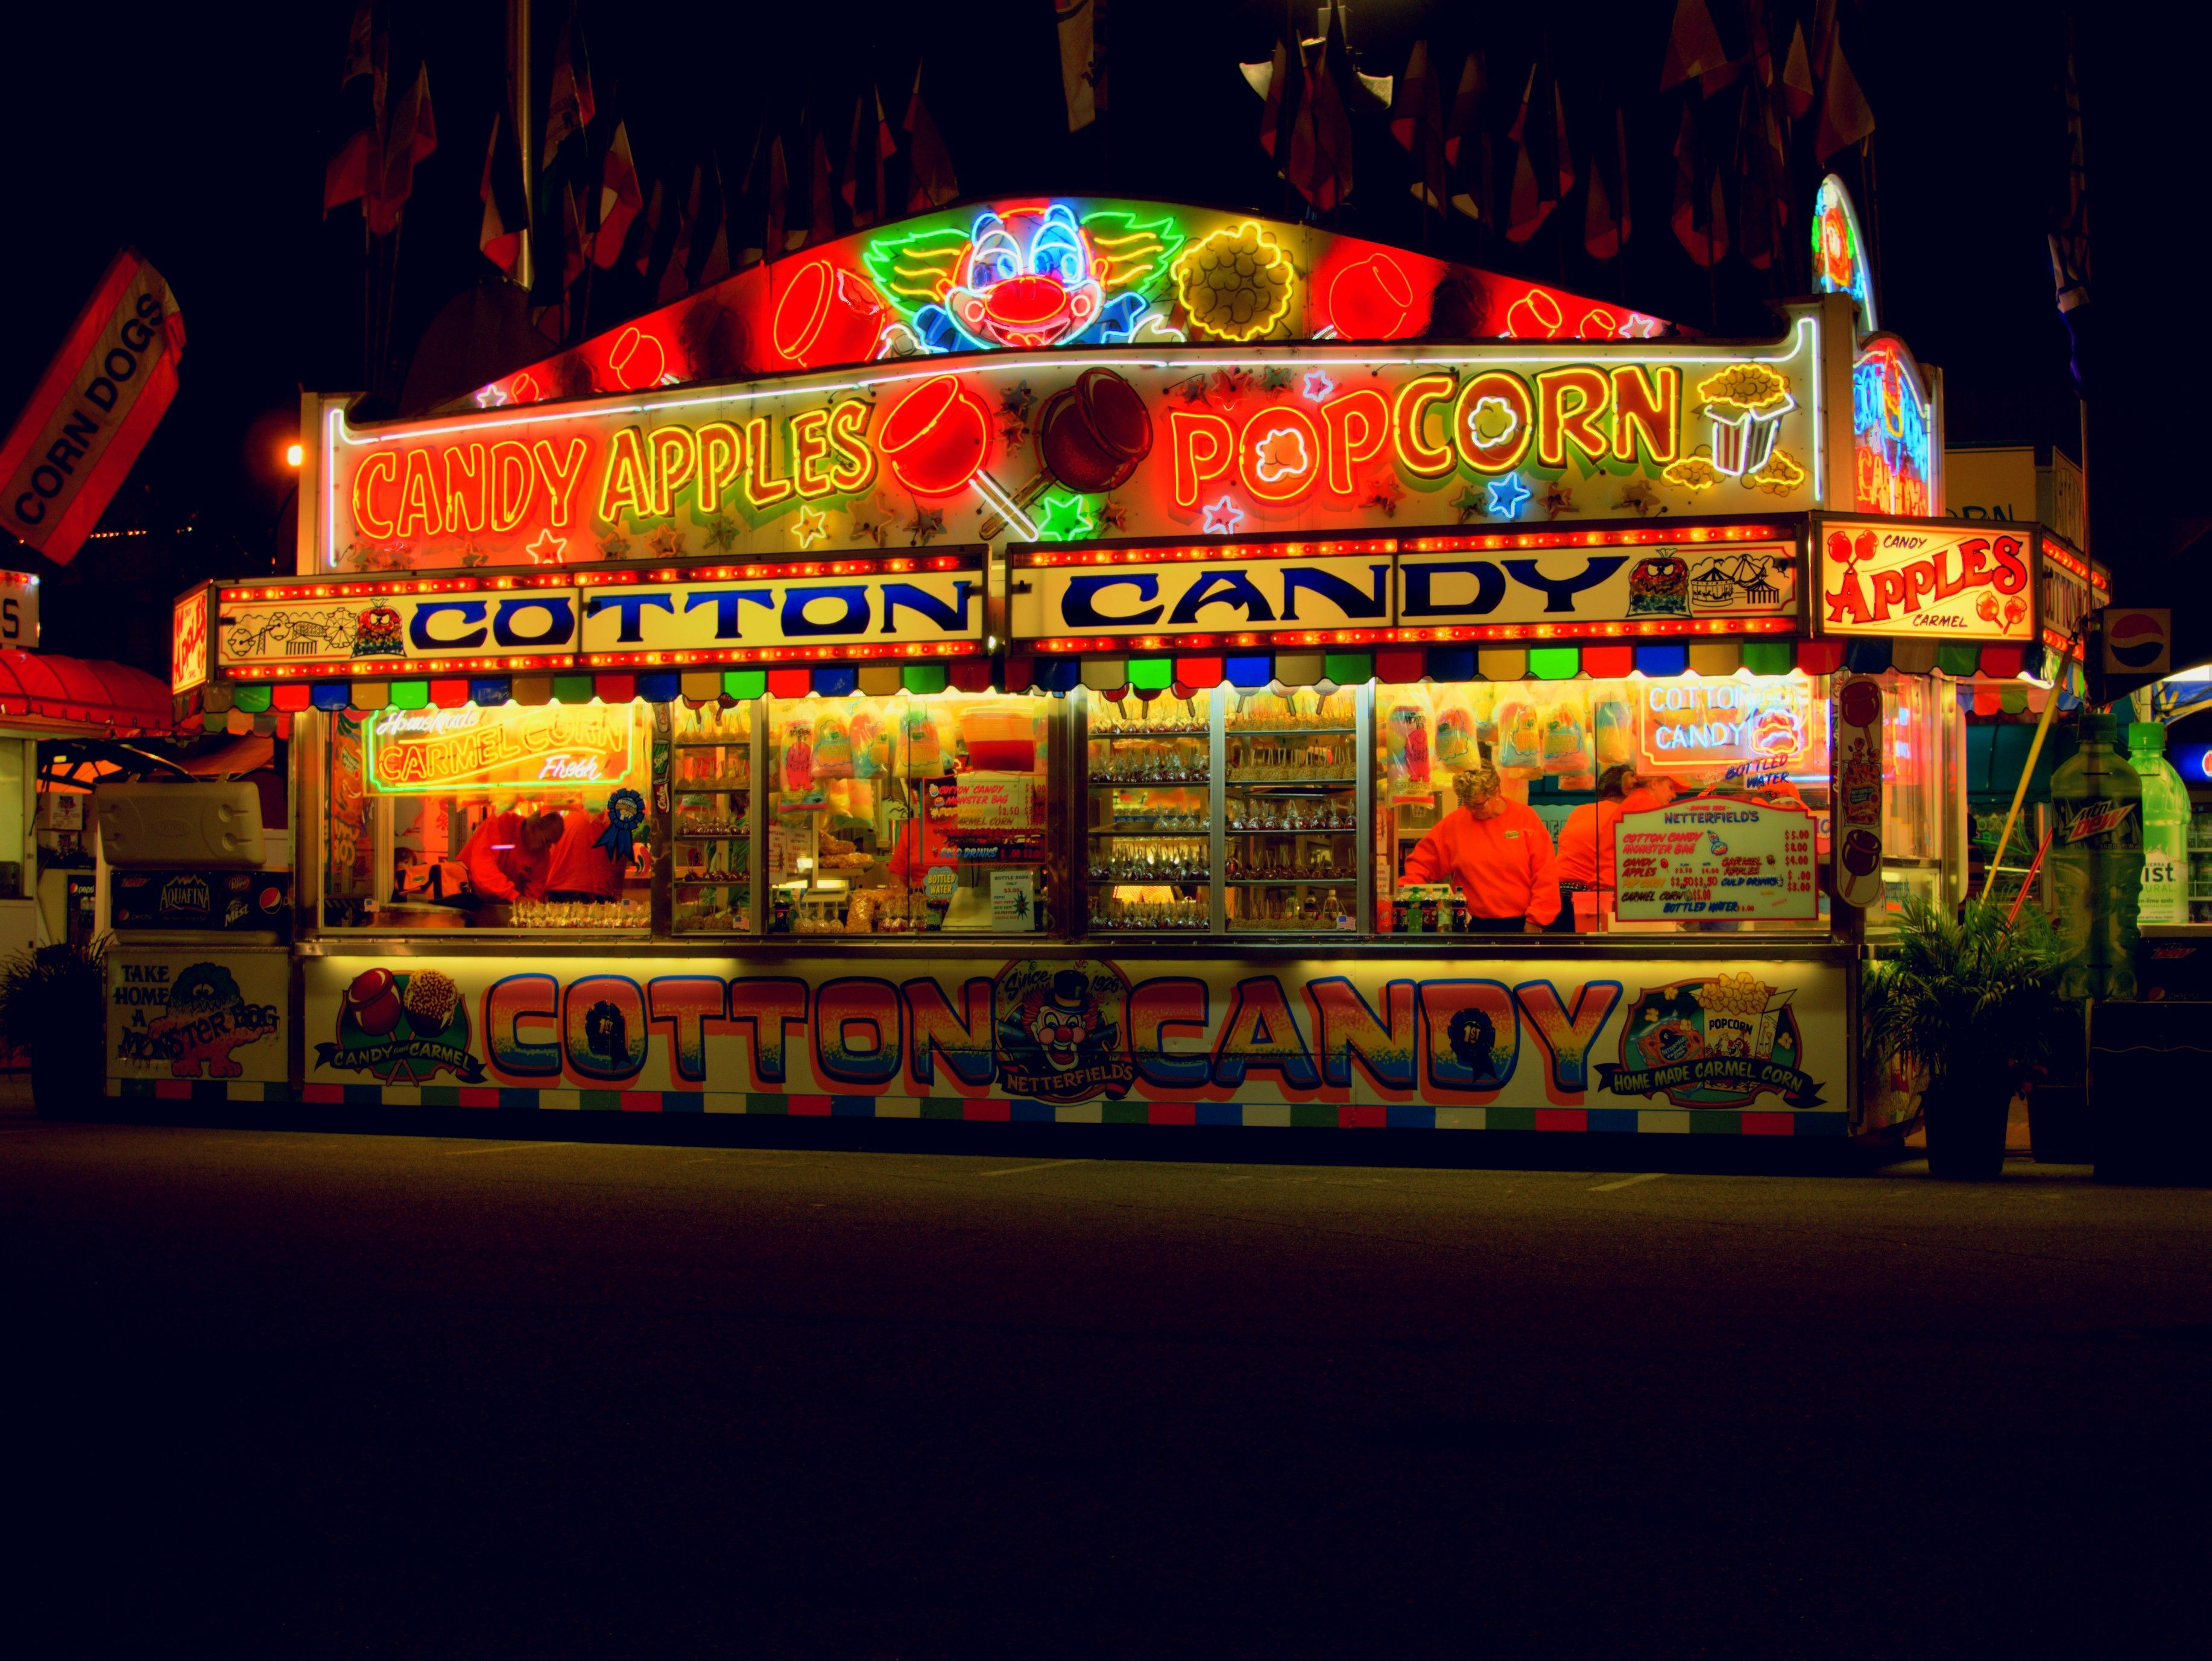 Cotton candy is a little tame for fair food dont ya think